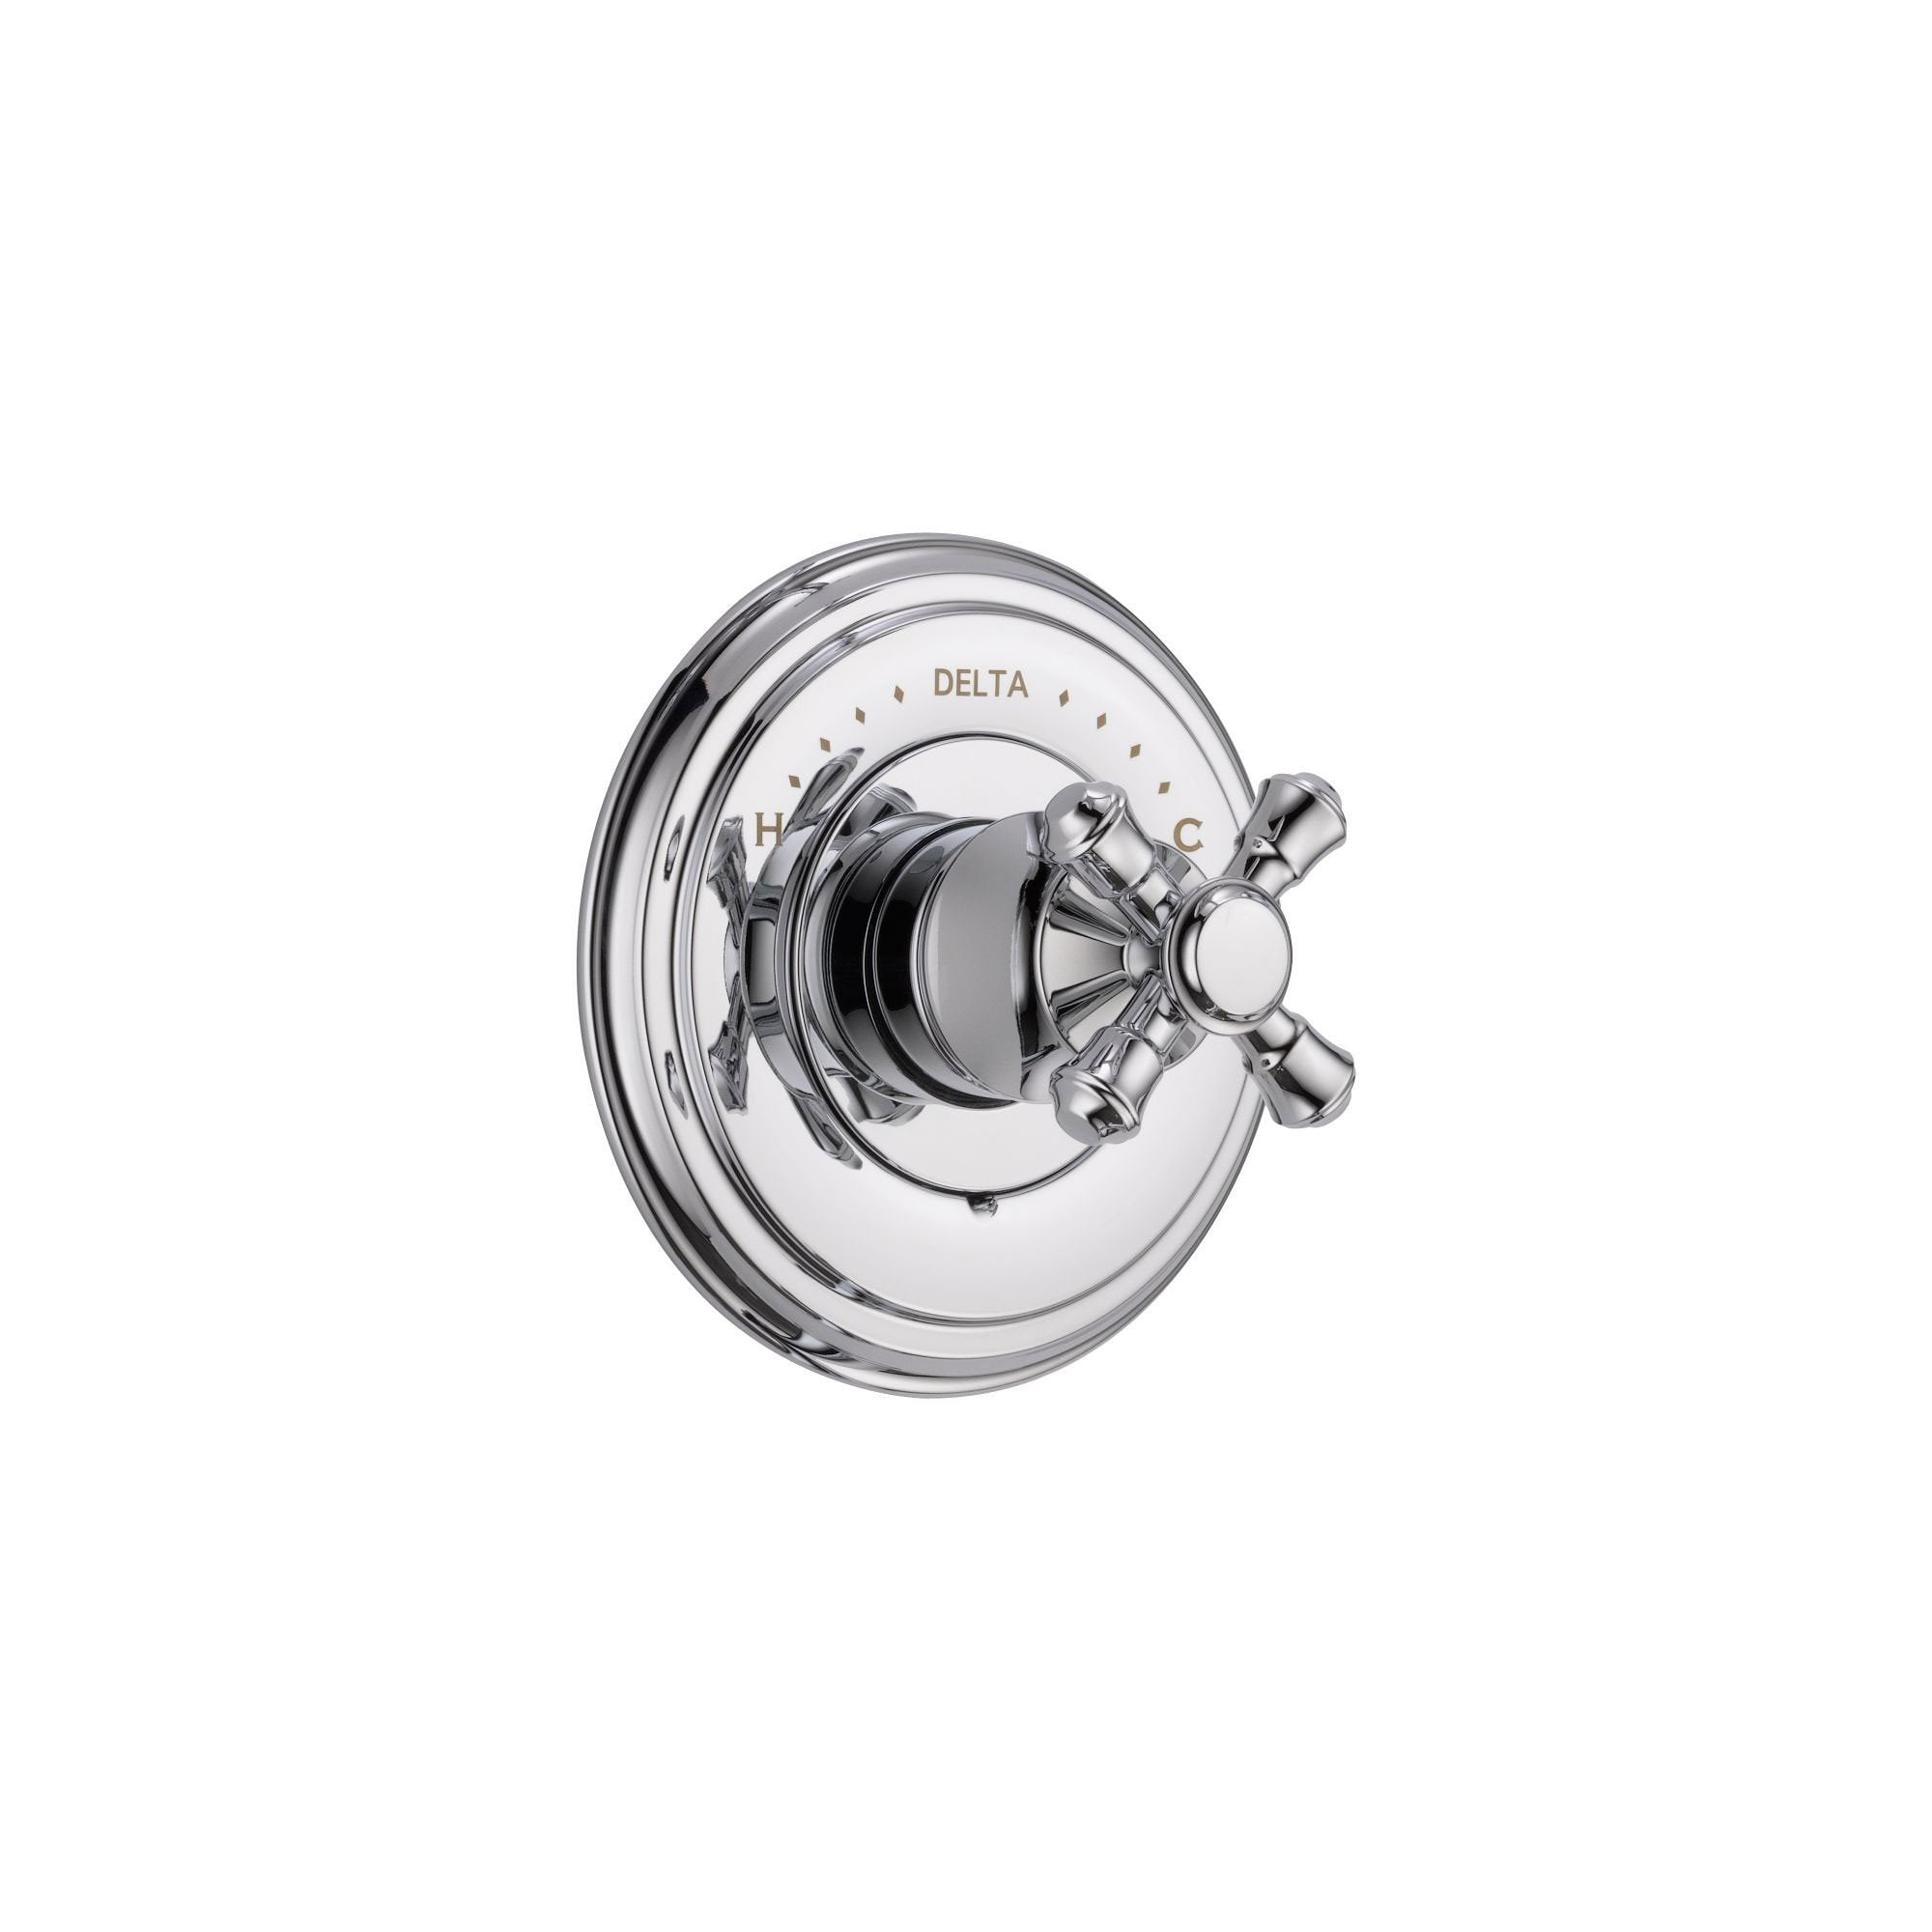 Delta Cassidy Monitor 14 Series Chrome Finish Pressure Balanced Shower Faucet Control INCLUDES Rough-in Valve with Stops and Single Cross Handle D1251V